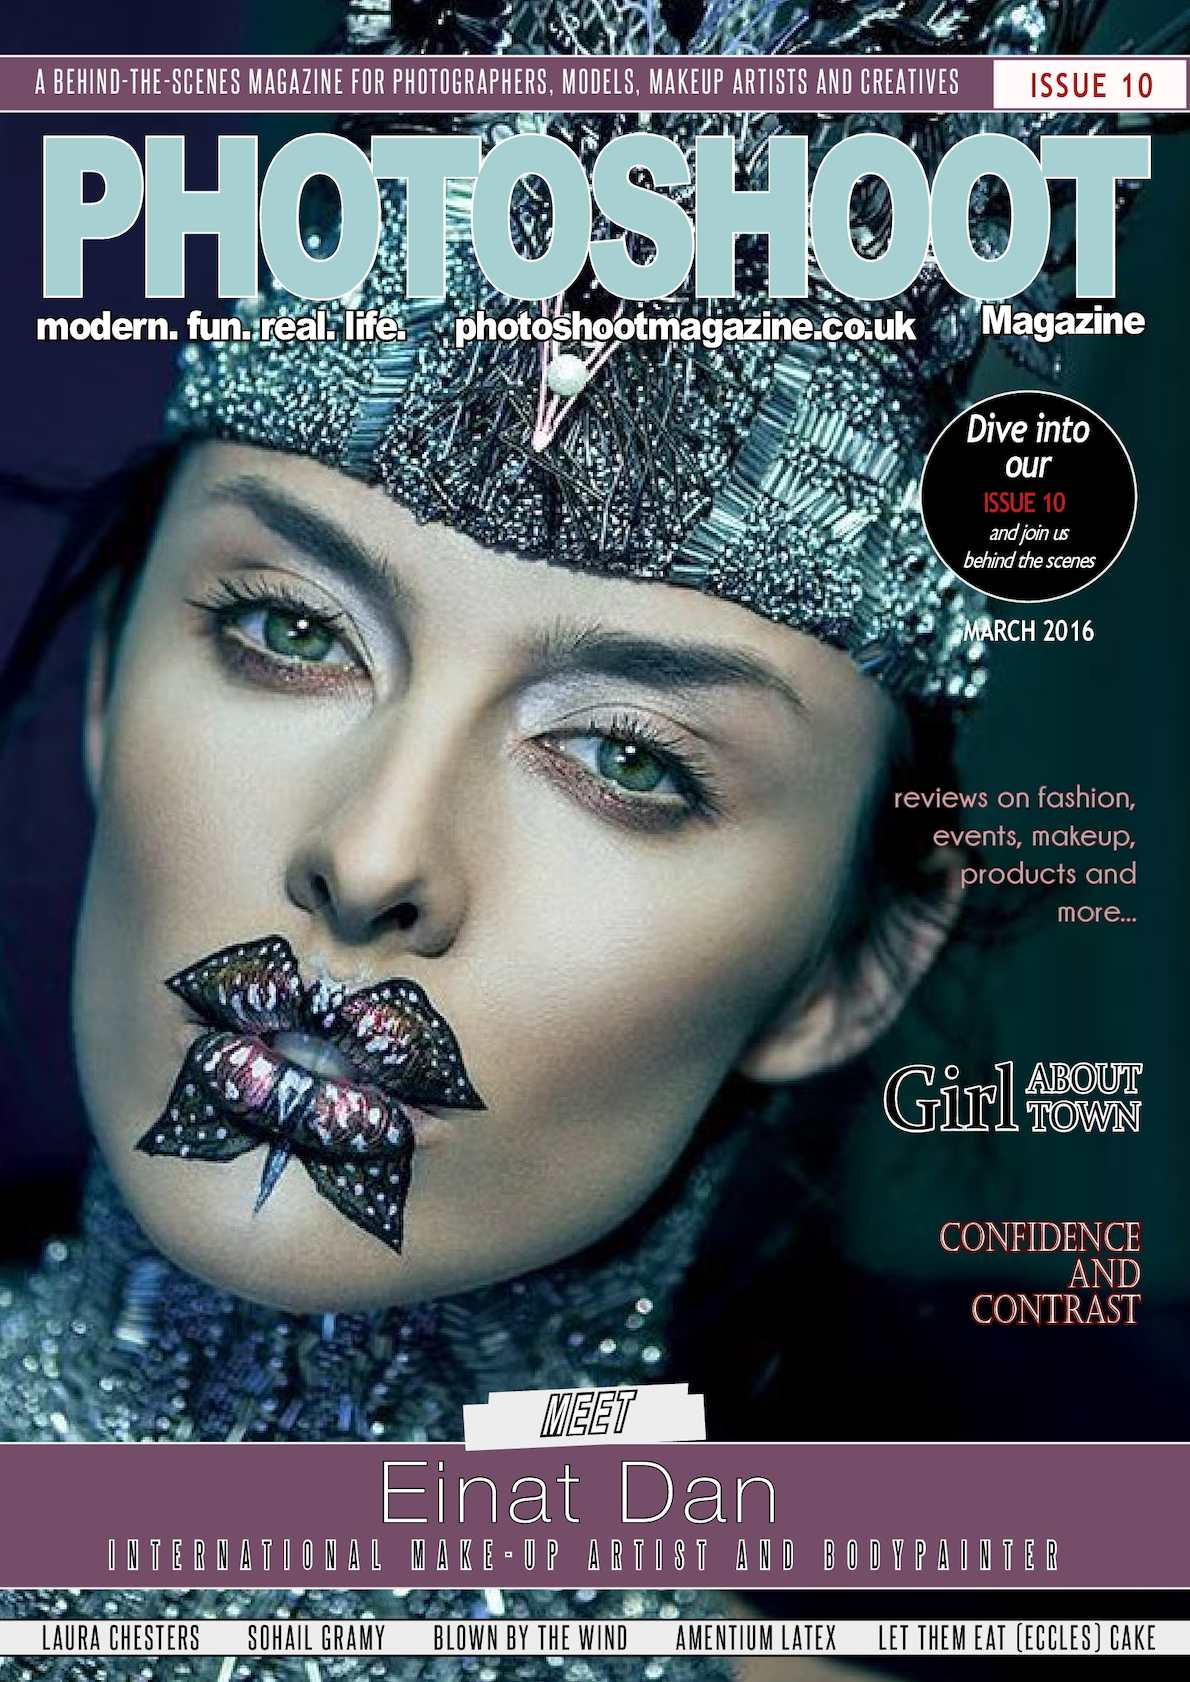 Digital Photography Book Cover : Calaméo photoshoot magazine issue march